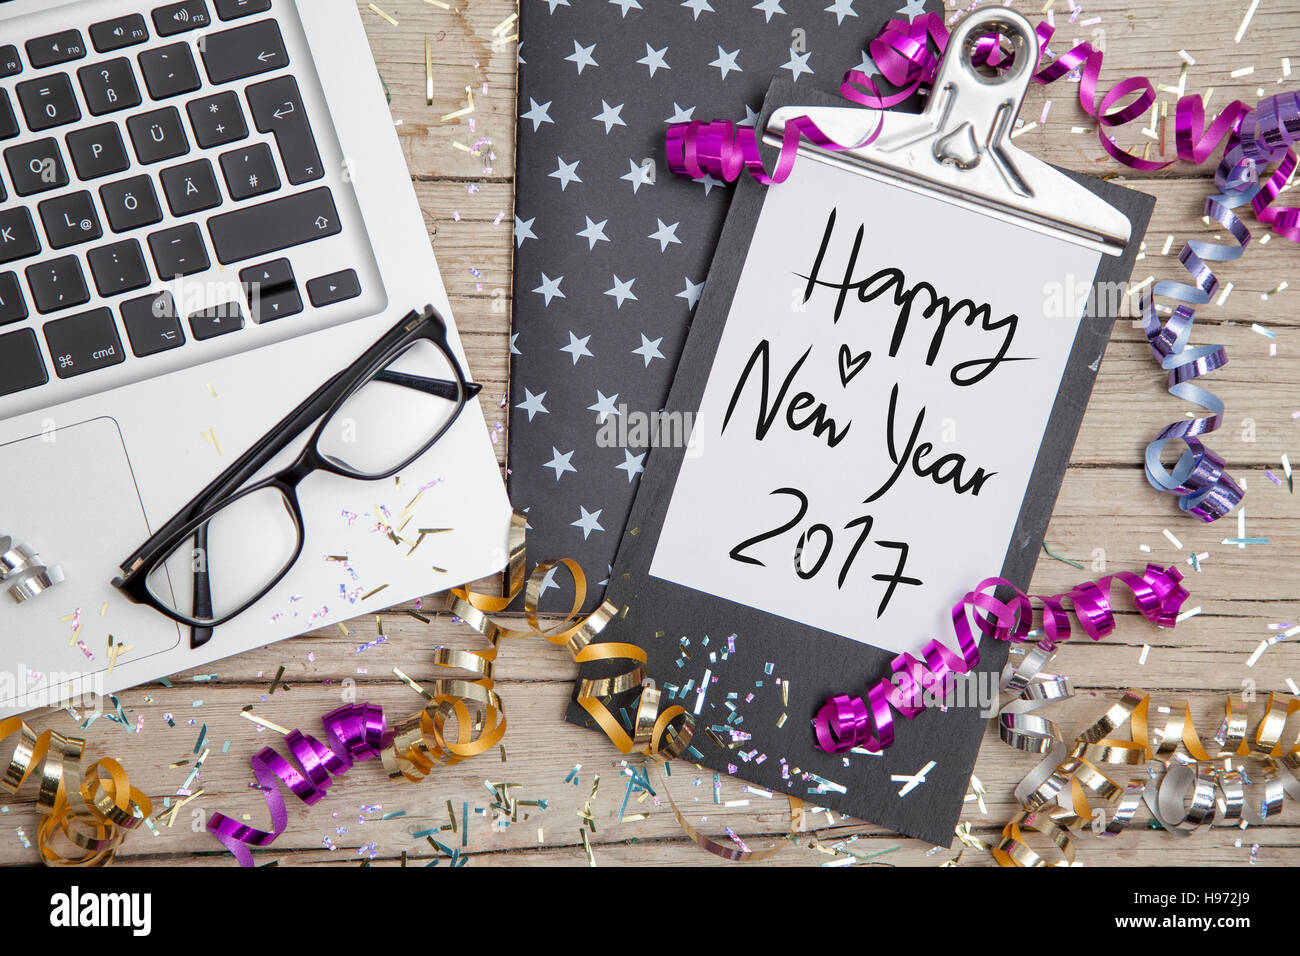 New Years Eve Business Card Stock Photo, Royalty Free Image ...